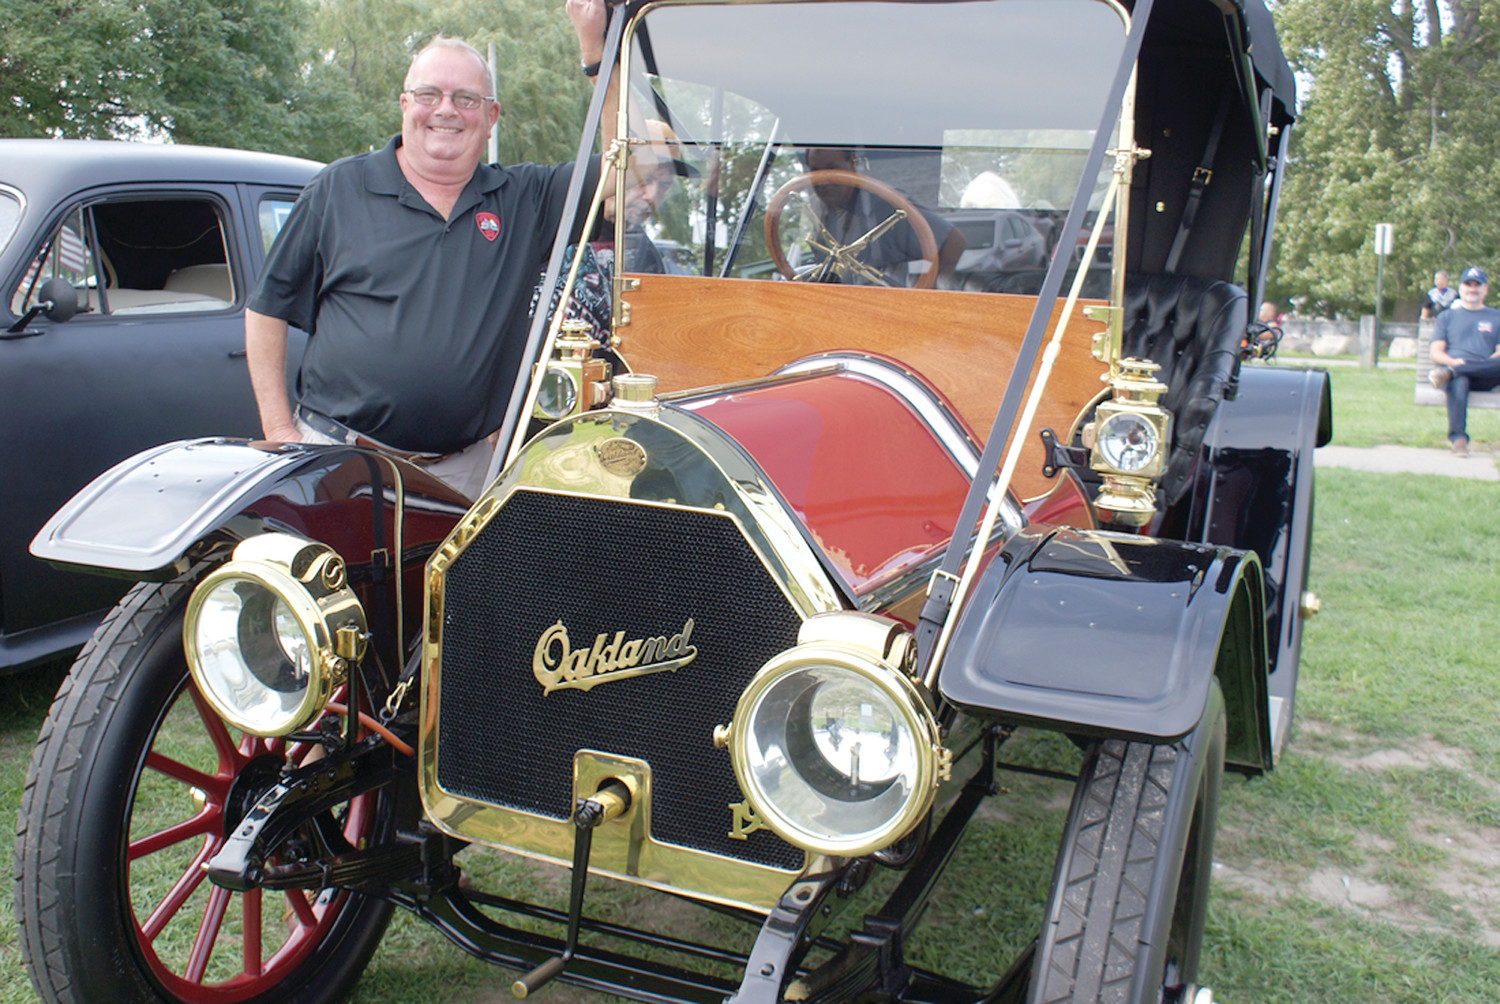 ONE OUT OF TWO: Keith Bailey proudly shows off his 1910 Oakland which is one of only two left in existence. His car was among the many on display at the Family Day Fundraiser to at Oakland Beach in Warwick.